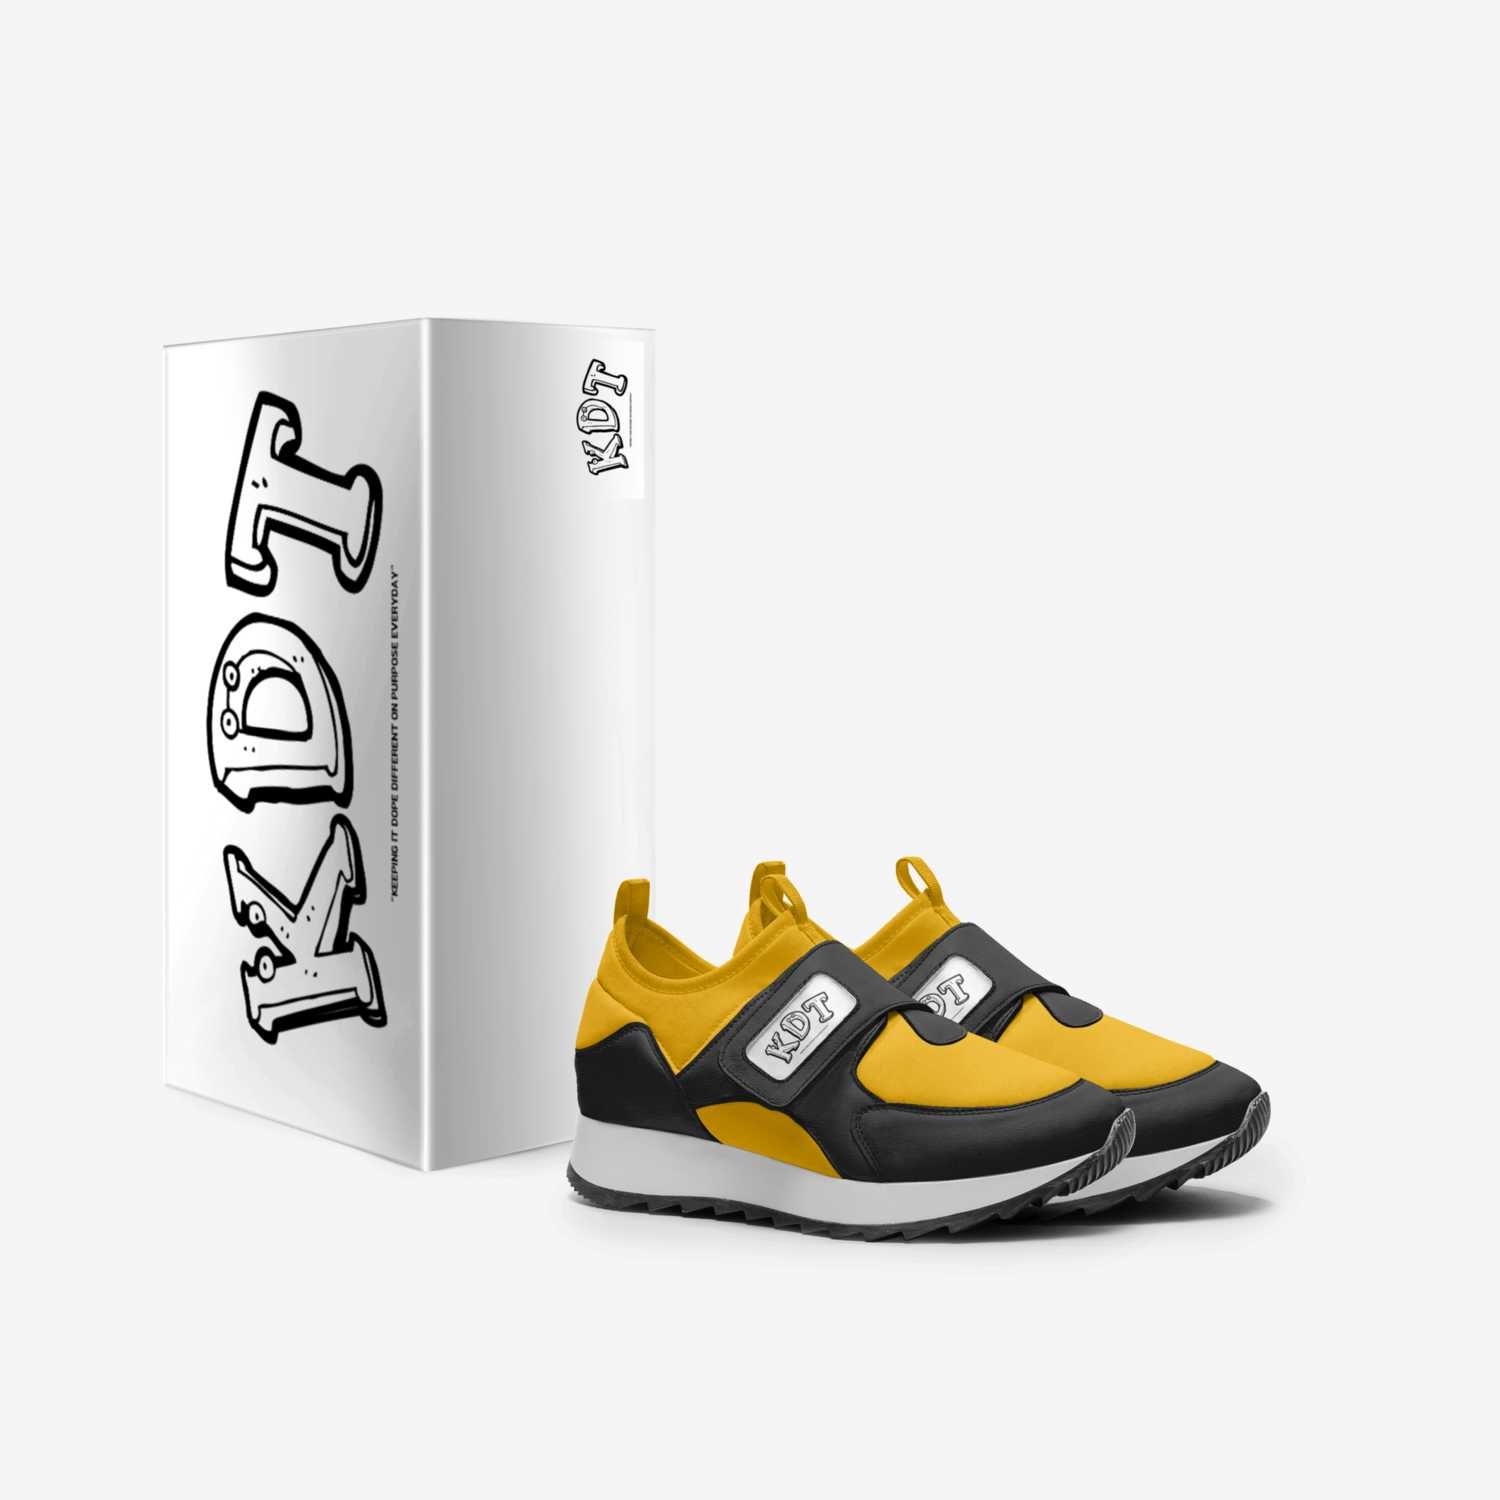 KIDDO I custom made in Italy shoes by Kuriyan Allen | Box view